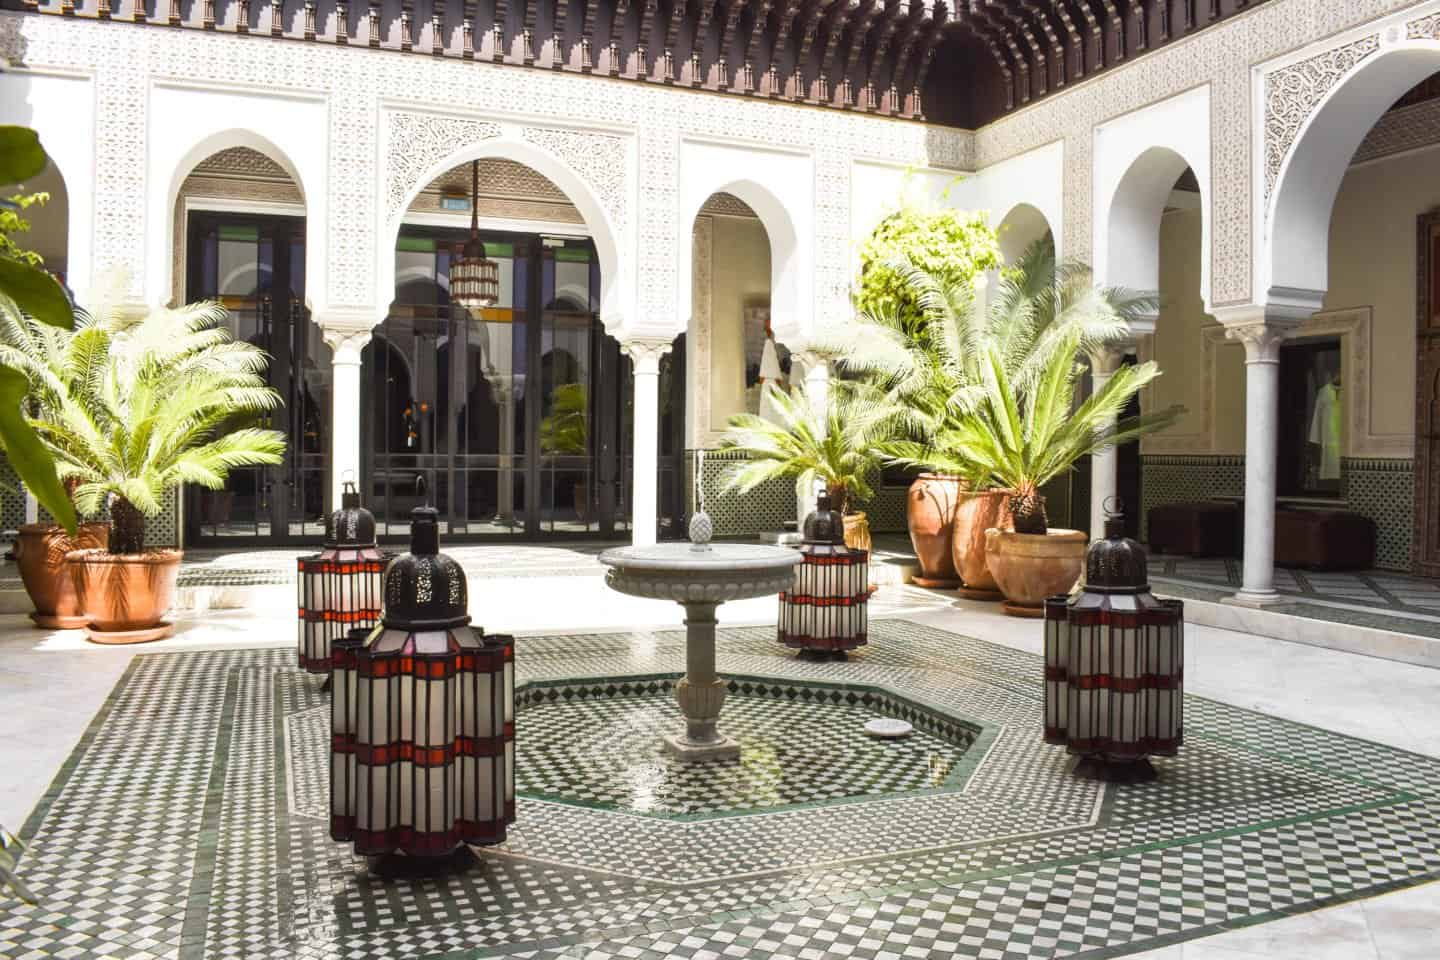 The stunning entrance to the spa at La Mamounia